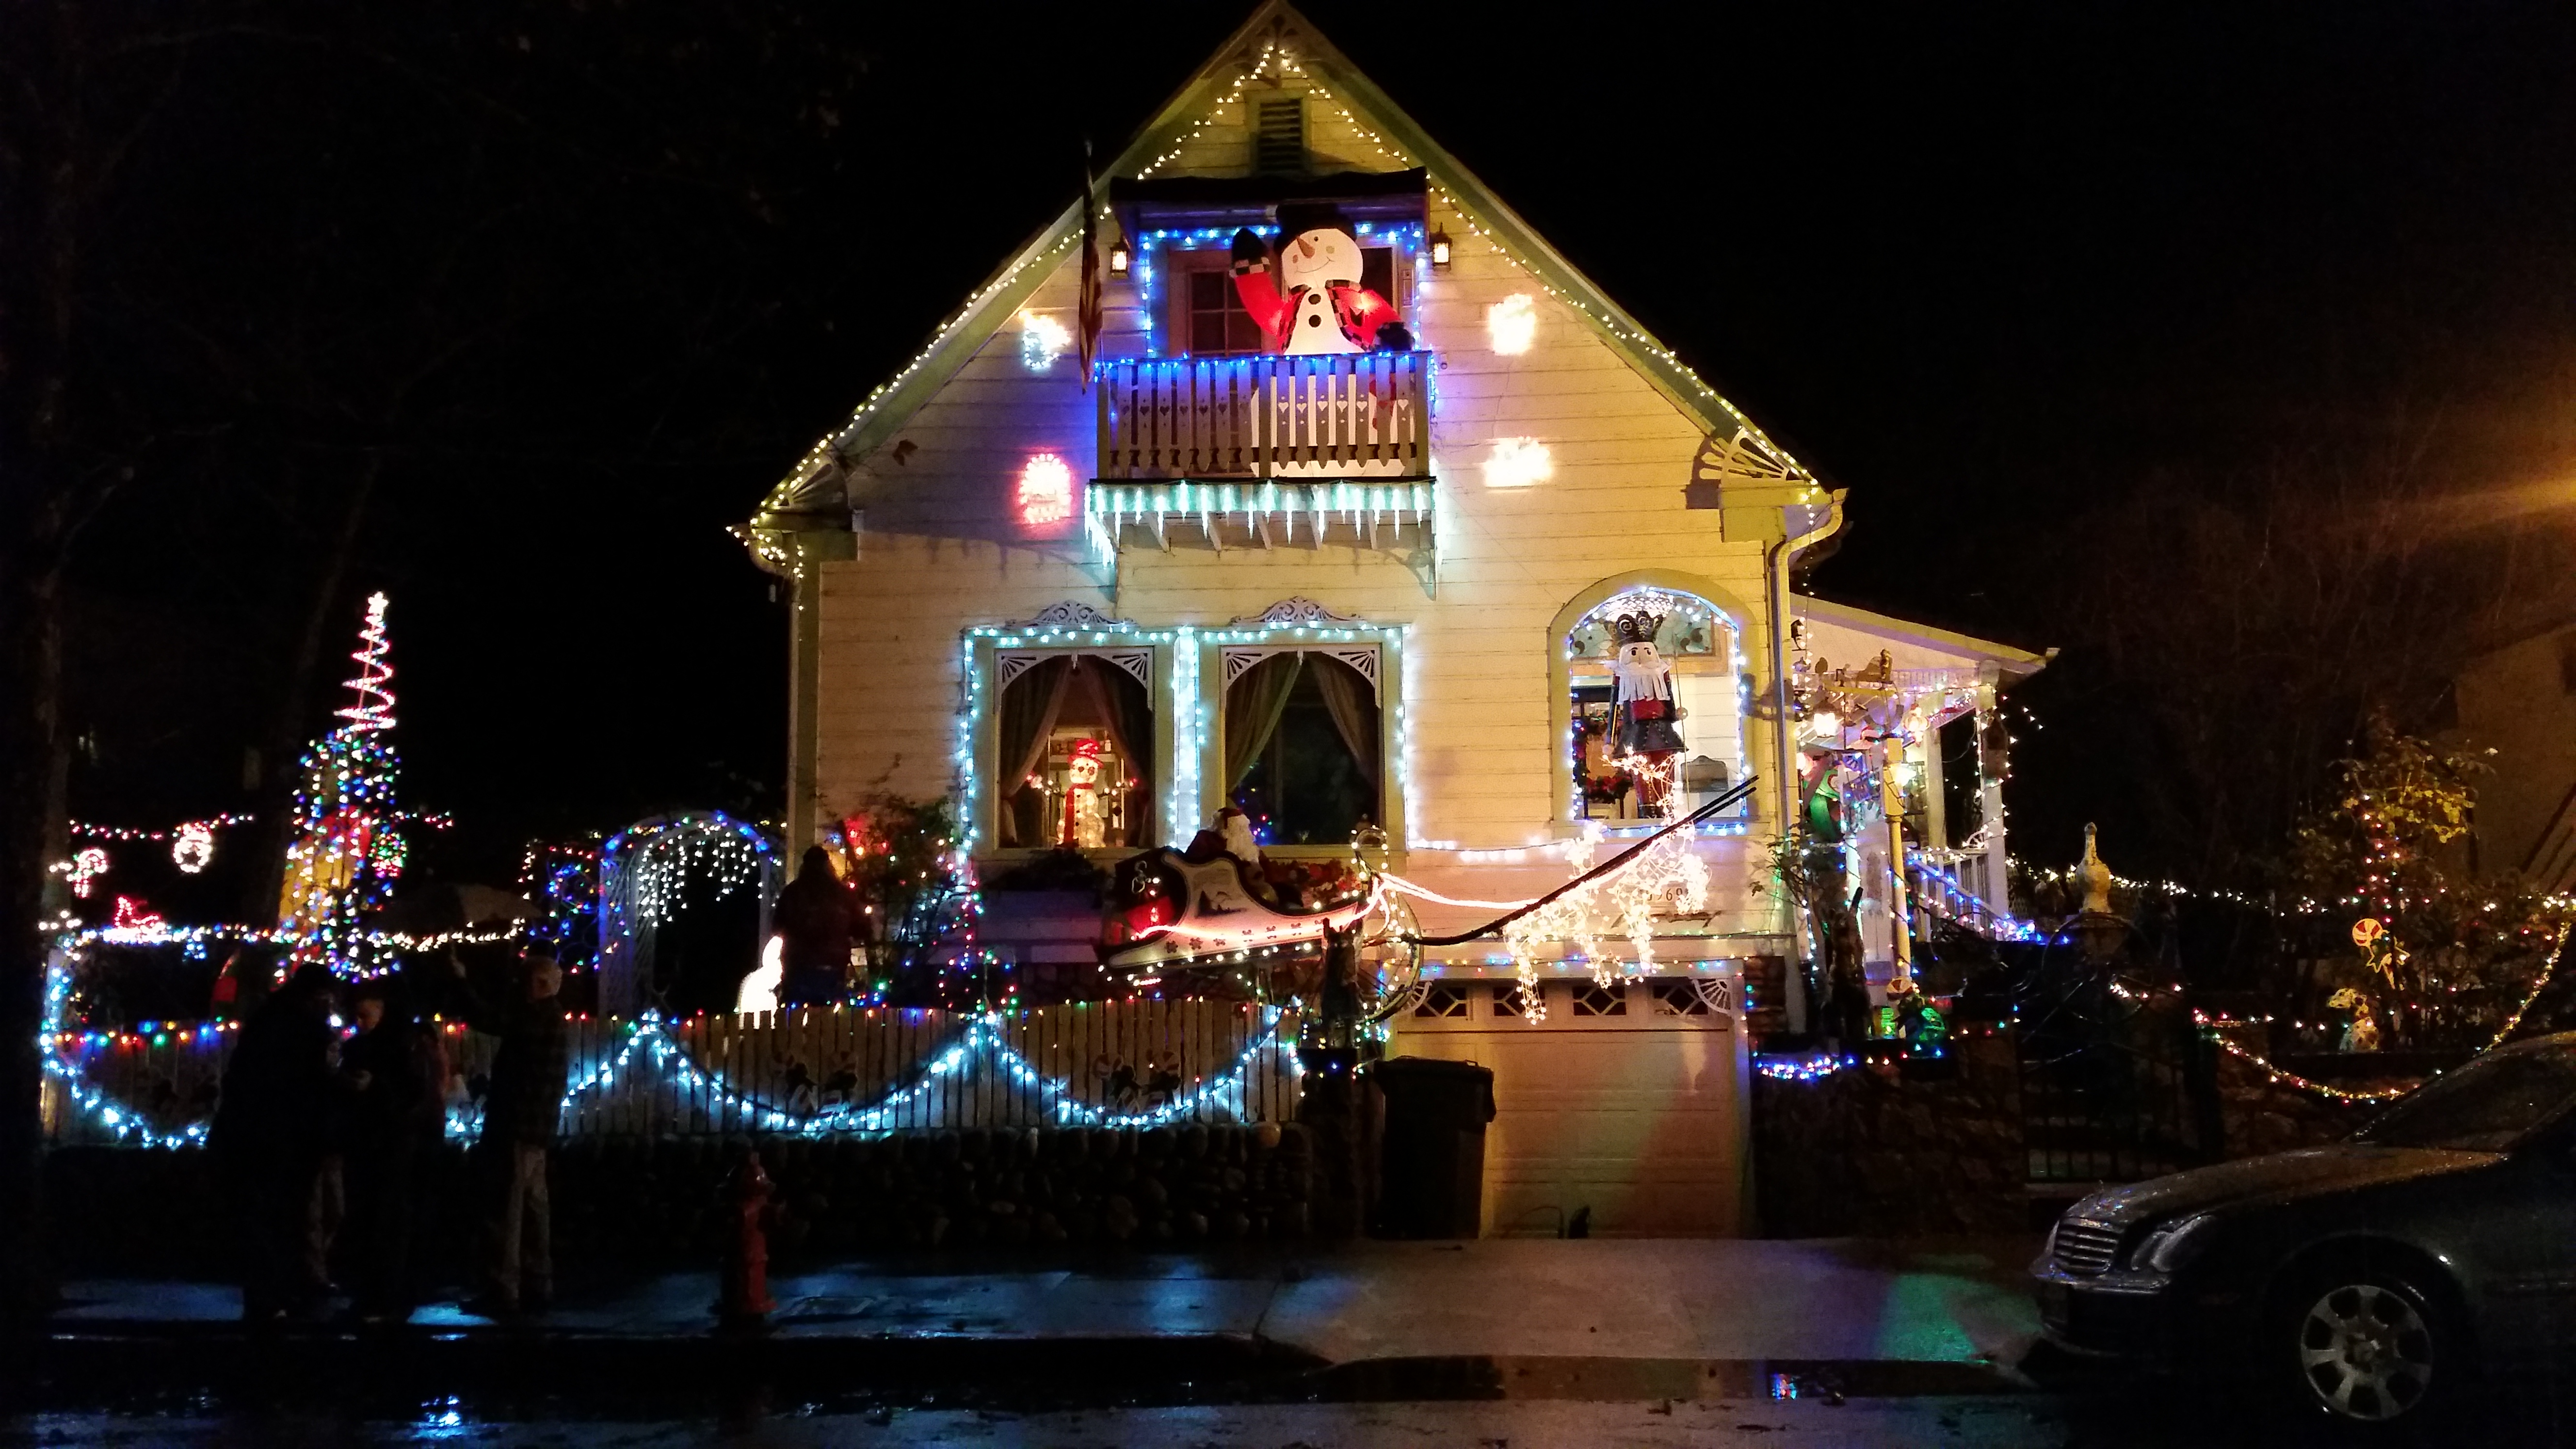 Dunsmuir House Christmas 2019 Dunsmuir Chamber of Commerce Blog – Page 32 – Dunsmuir Chamber of